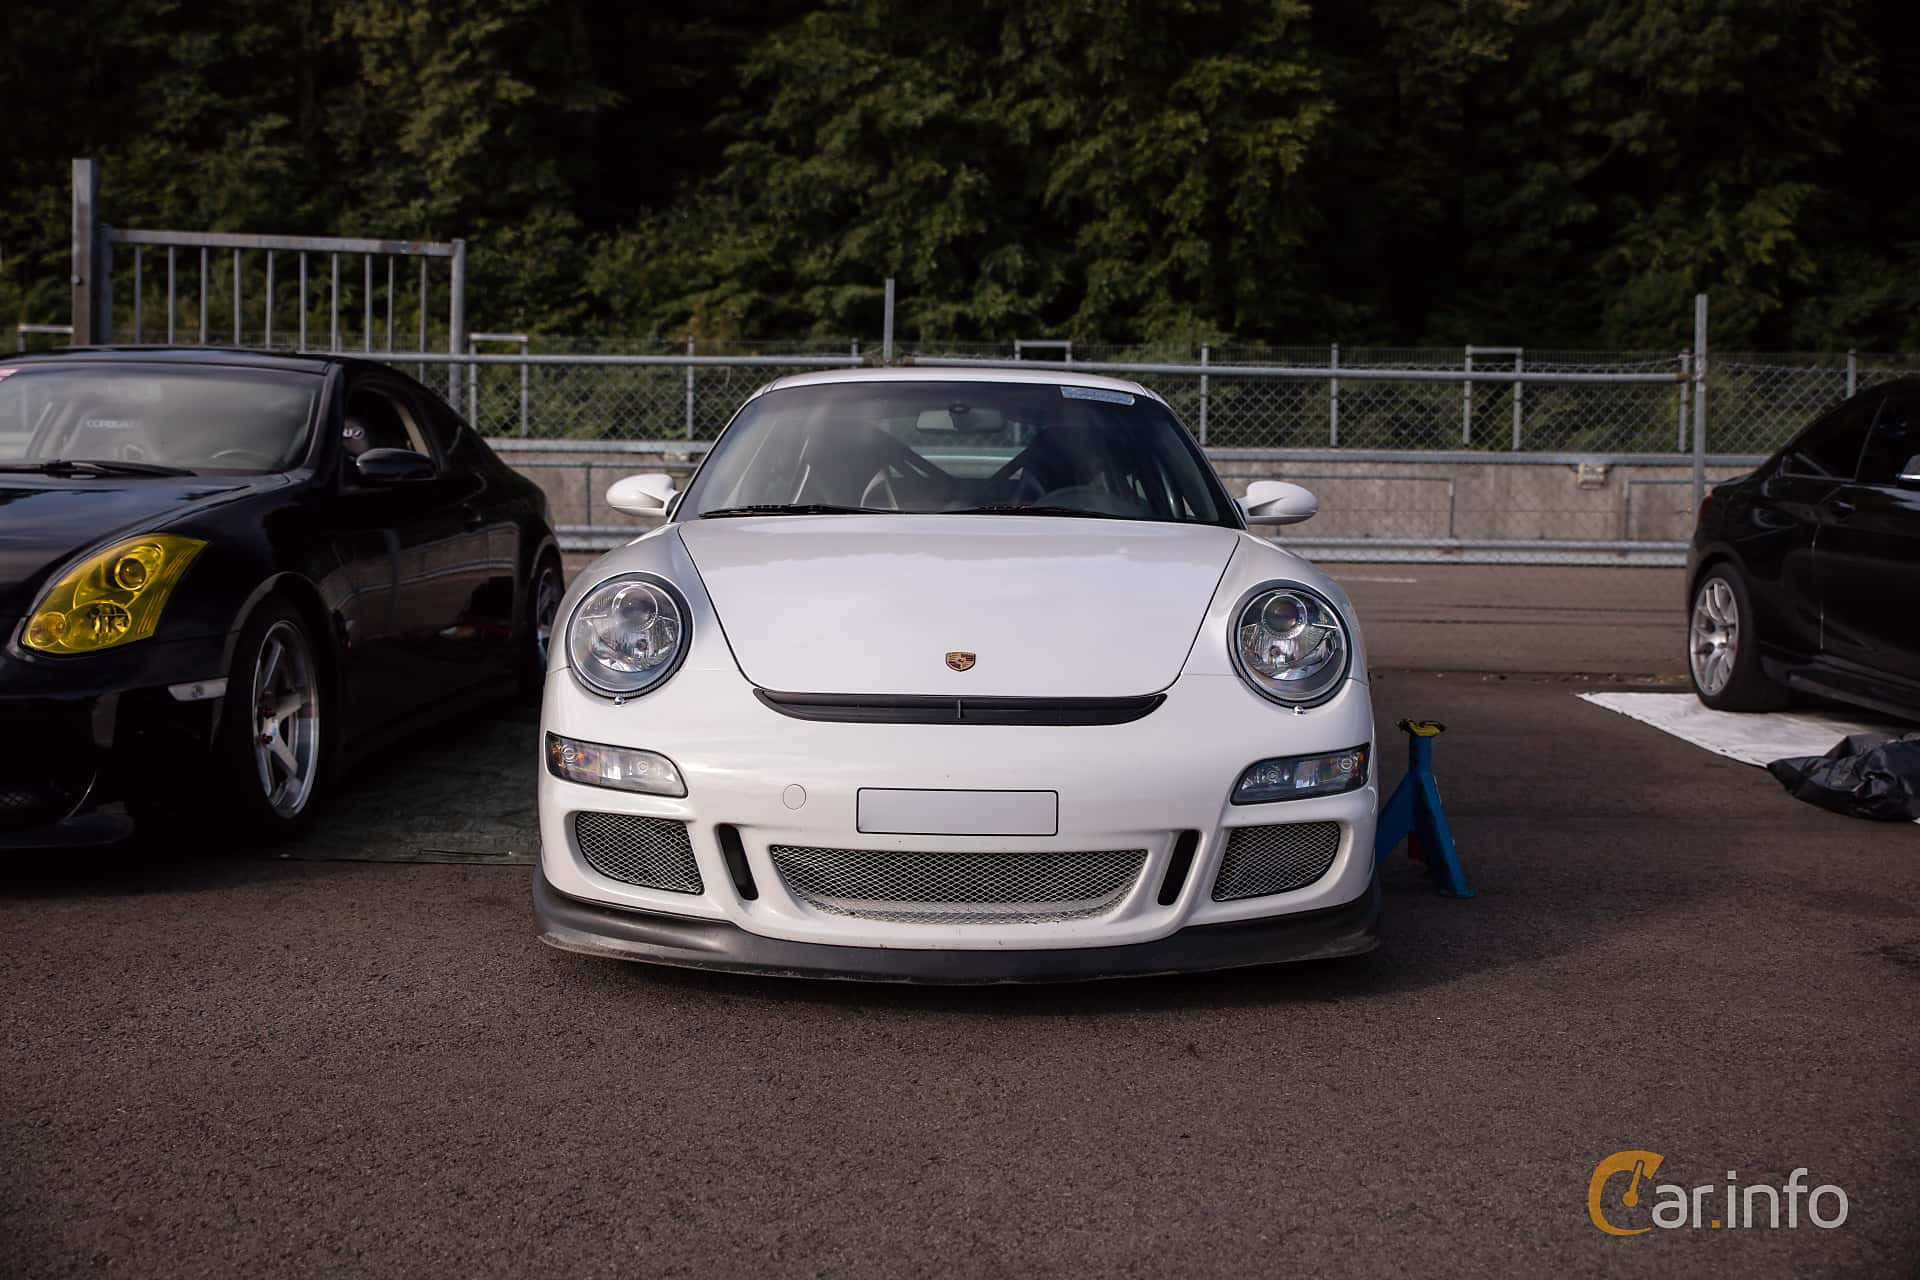 Porsche 911 GT3 3.6 H6 Manual, 415hp, 2007 at JapTuning Trackday 2018 Knutstorp